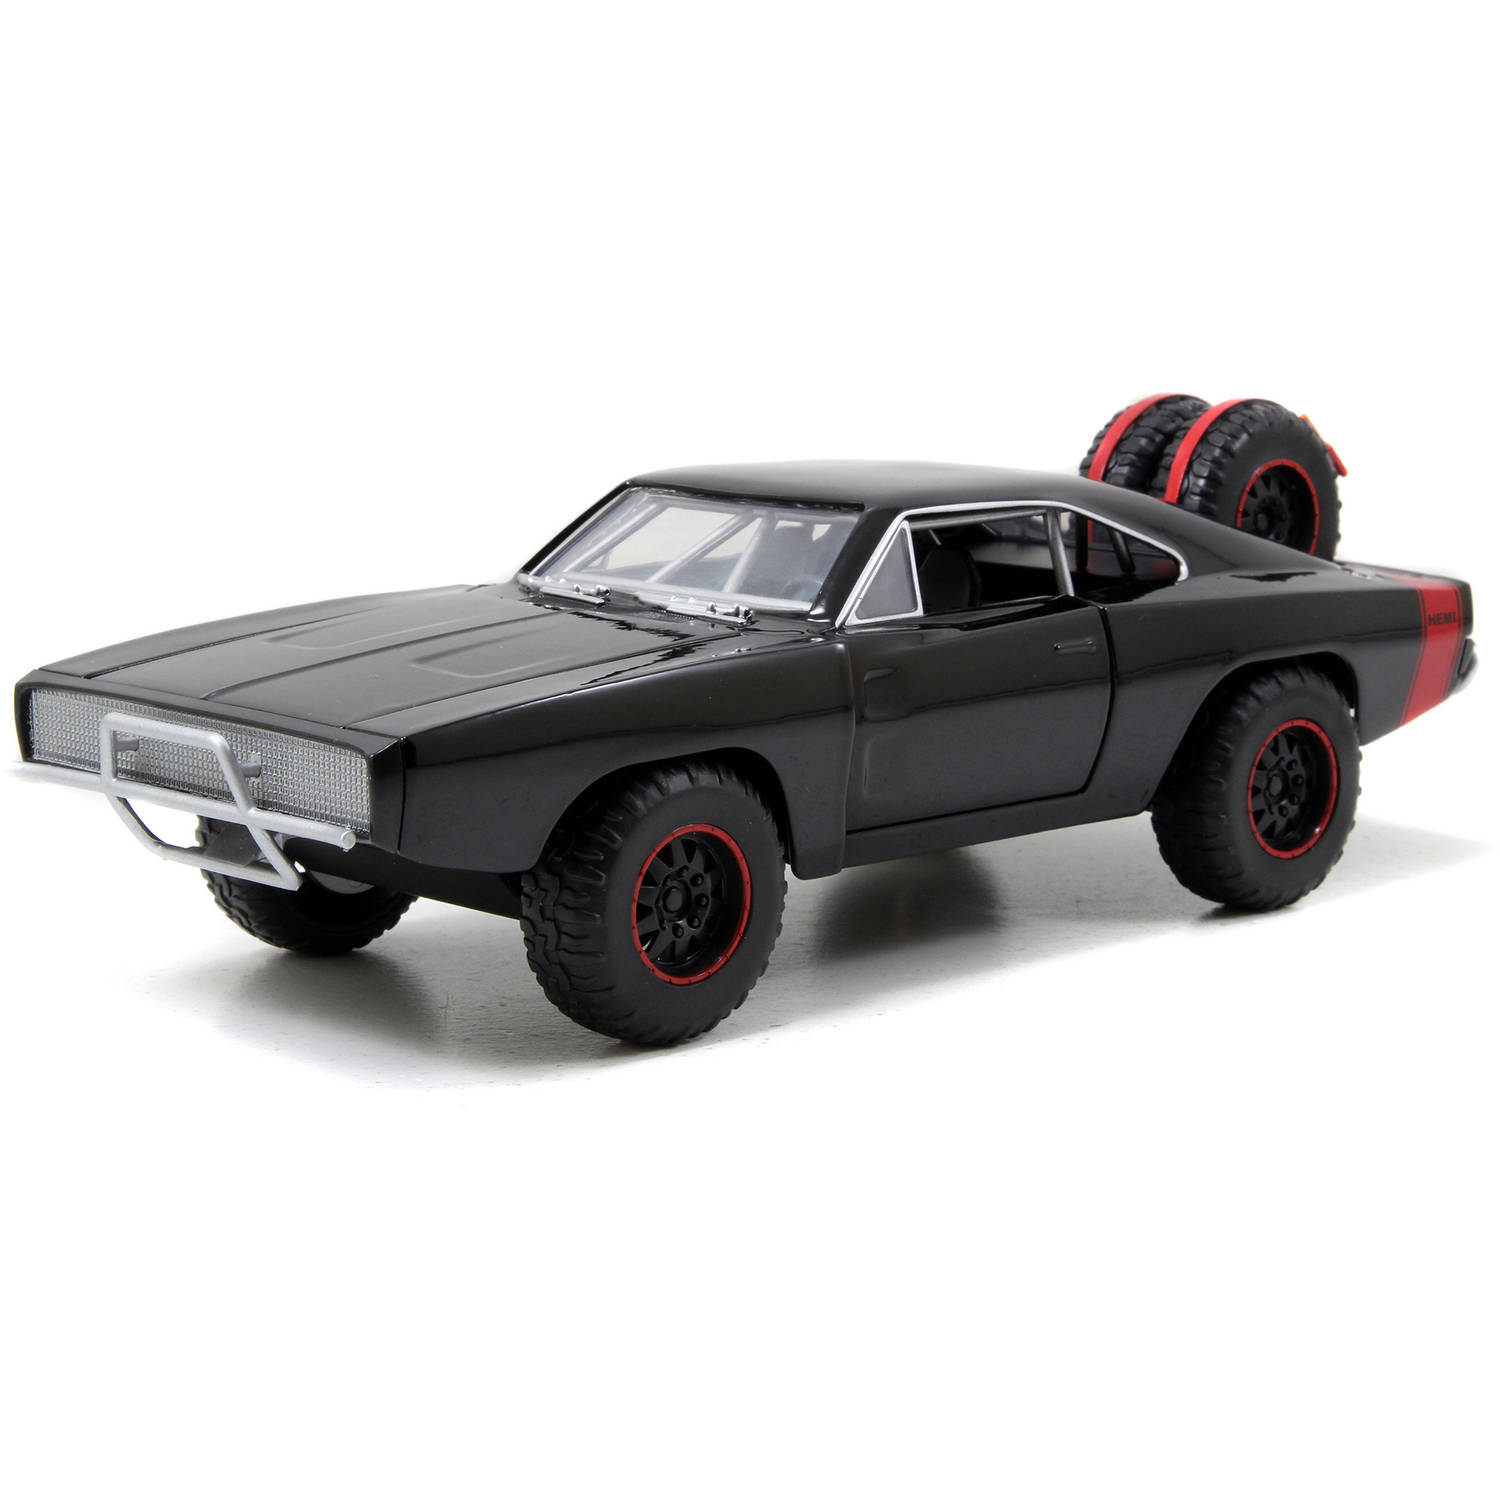 Jada Toys Fast and Furious 1 24 Scale Die Cast 1970 Dodge Charger Off Road by Jada